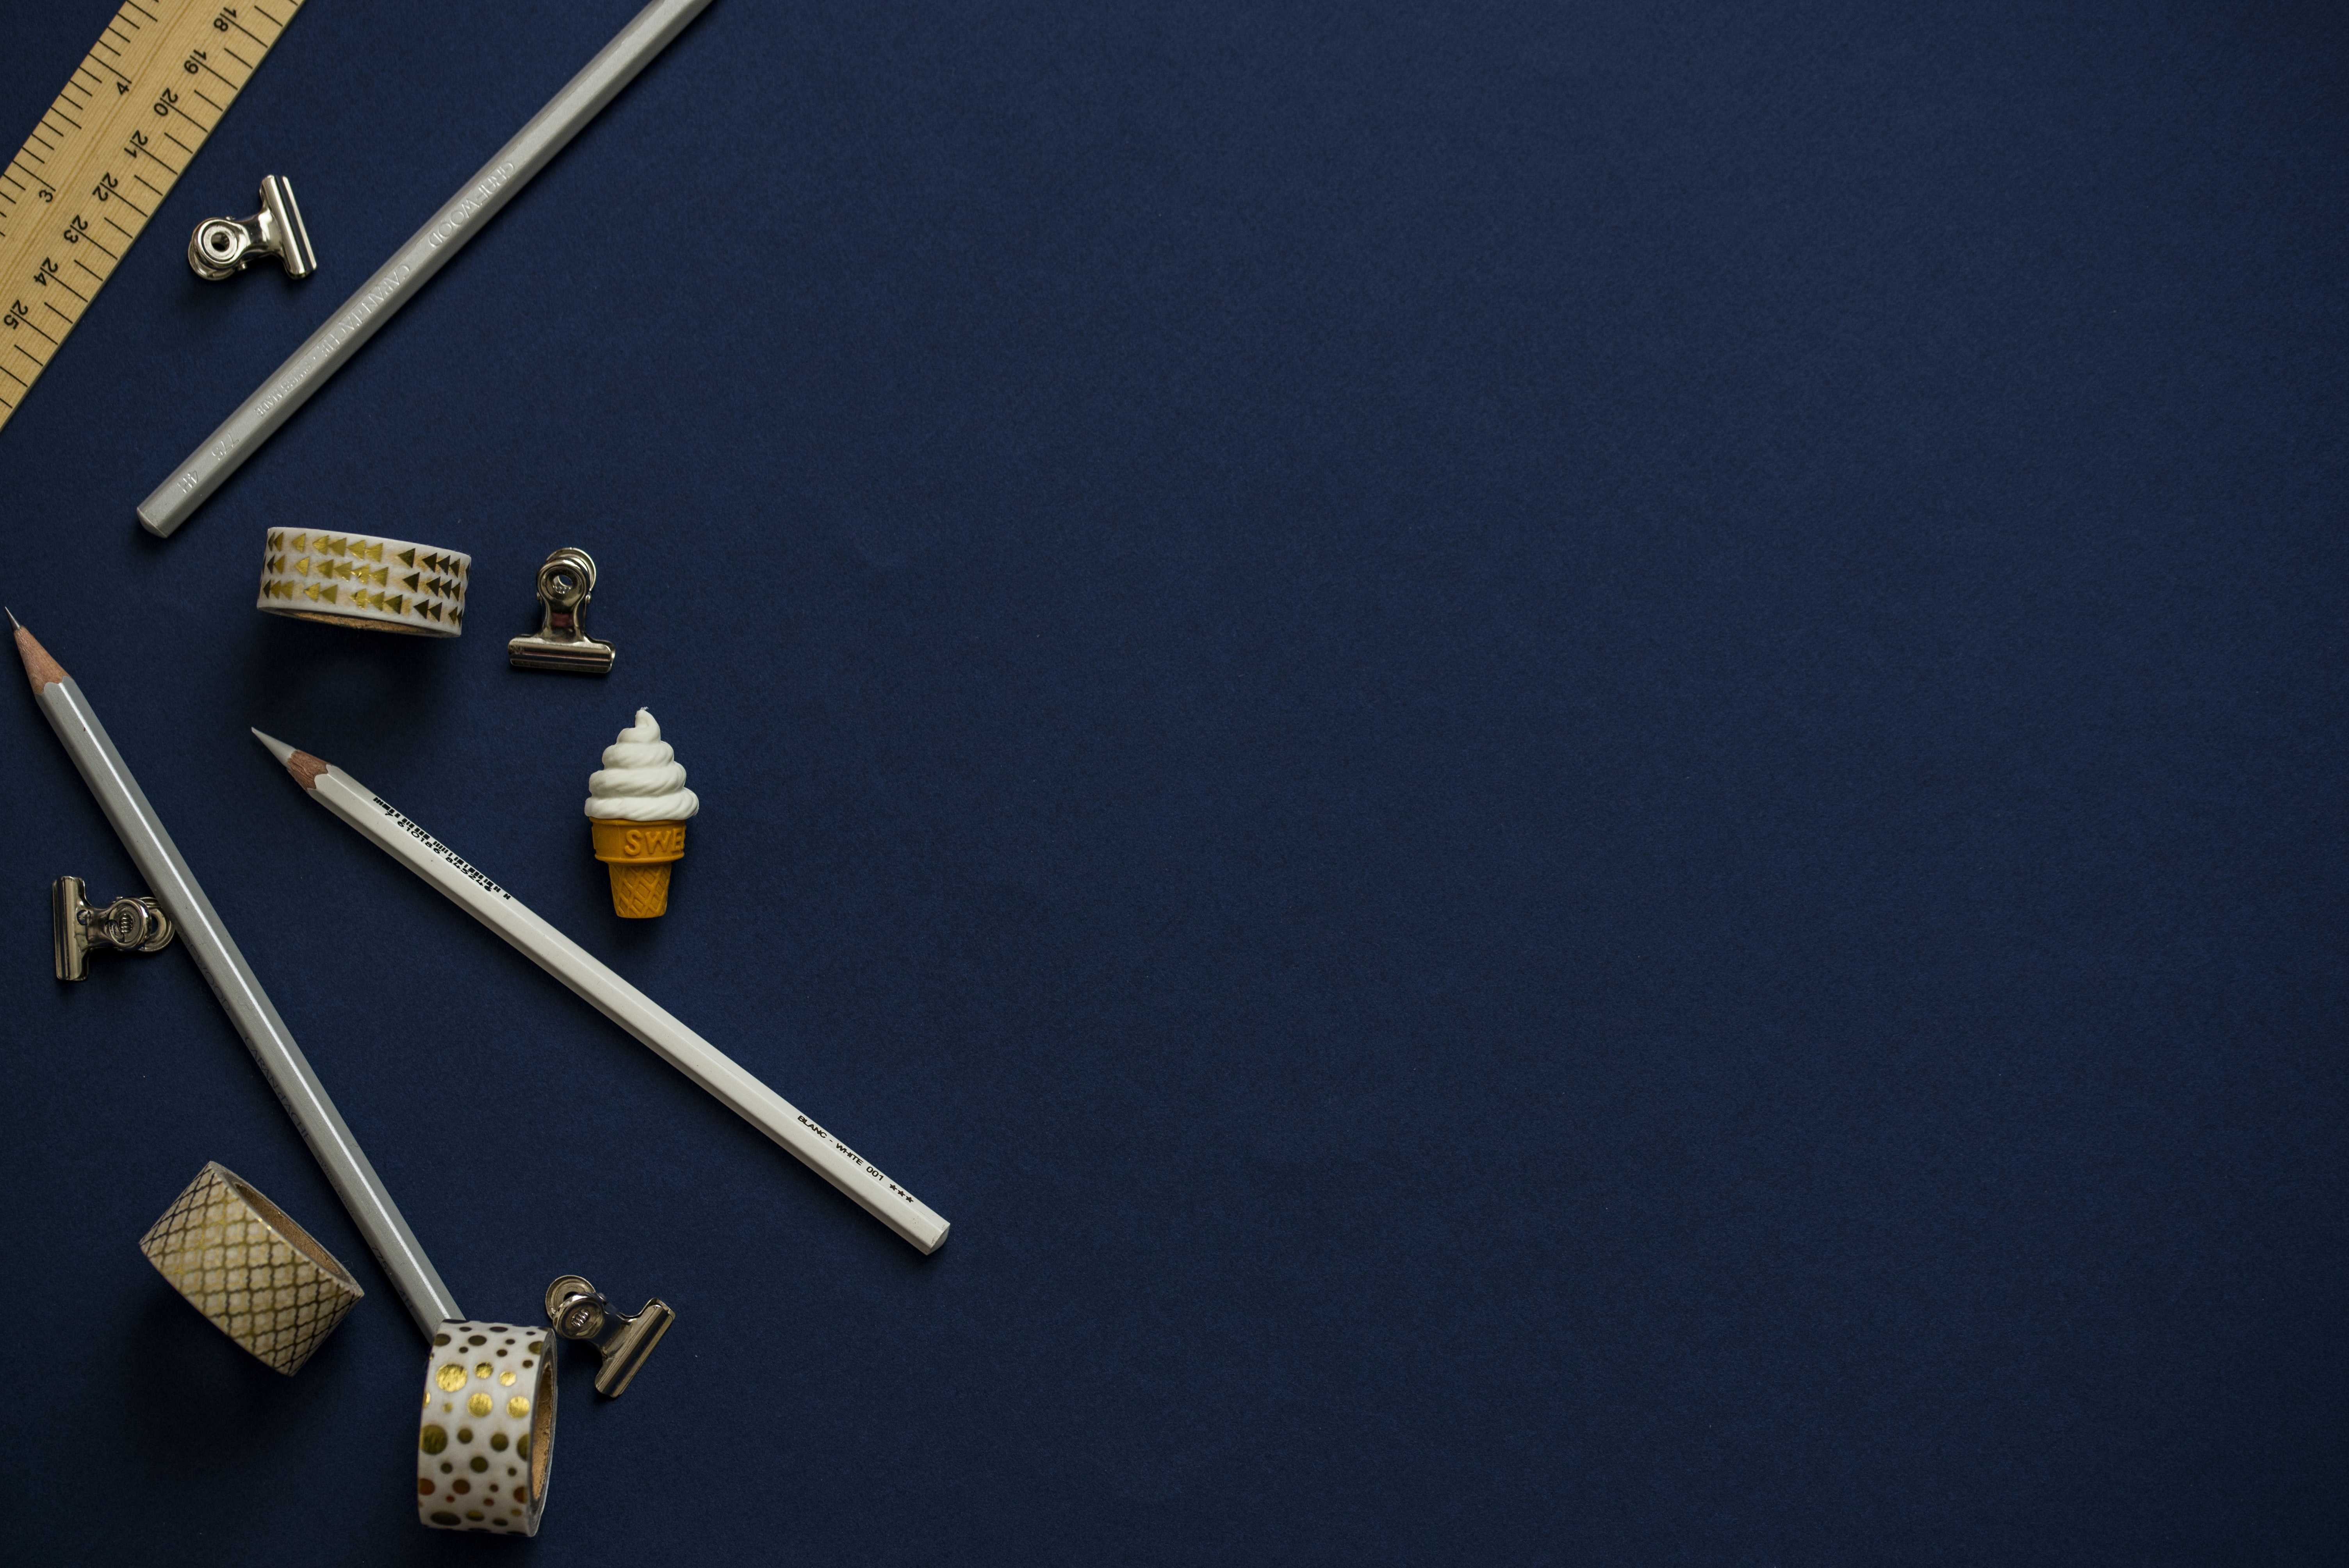 An overhead shot of pencils, a ruler, scotch tape and bulldog clips on a dark blue surface